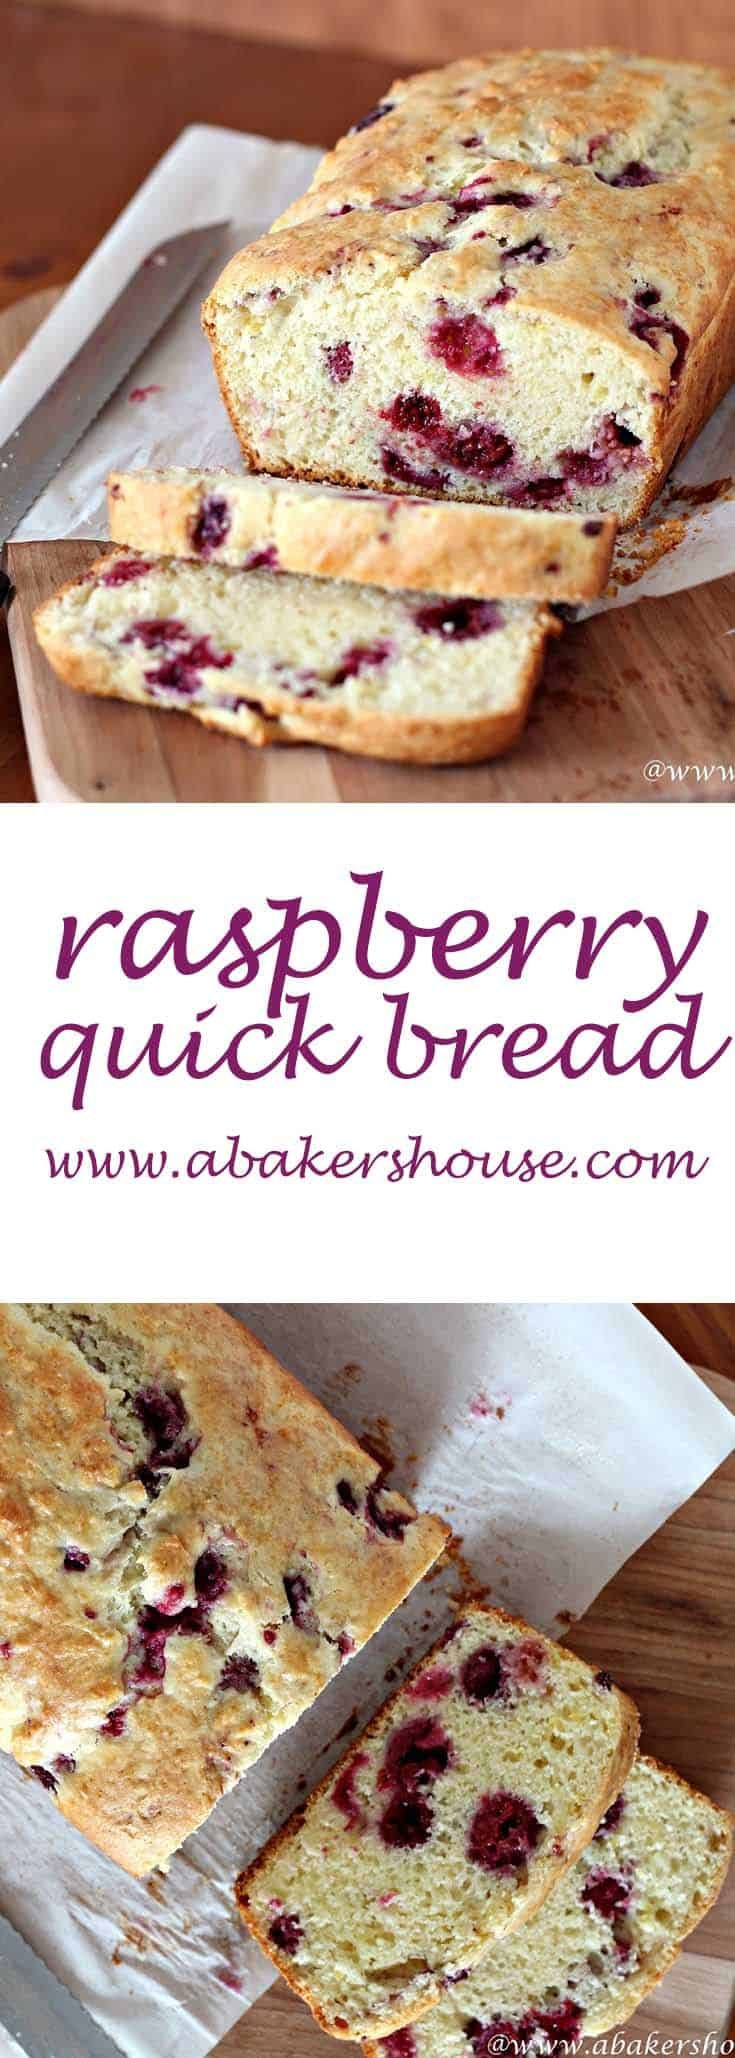 This raspberry quick bread that comes together in about an hour and can be ready for your afternoon cup of tea. I used raspberries (frozen, in fact), but blueberries, cranberries or cherries would all work. Fresh or frozen, berries in this bread add a sweetness and color that make this a recipe to keep handy. #abakershouse #raspberries #frozenberries #freshberries #breadrecipe